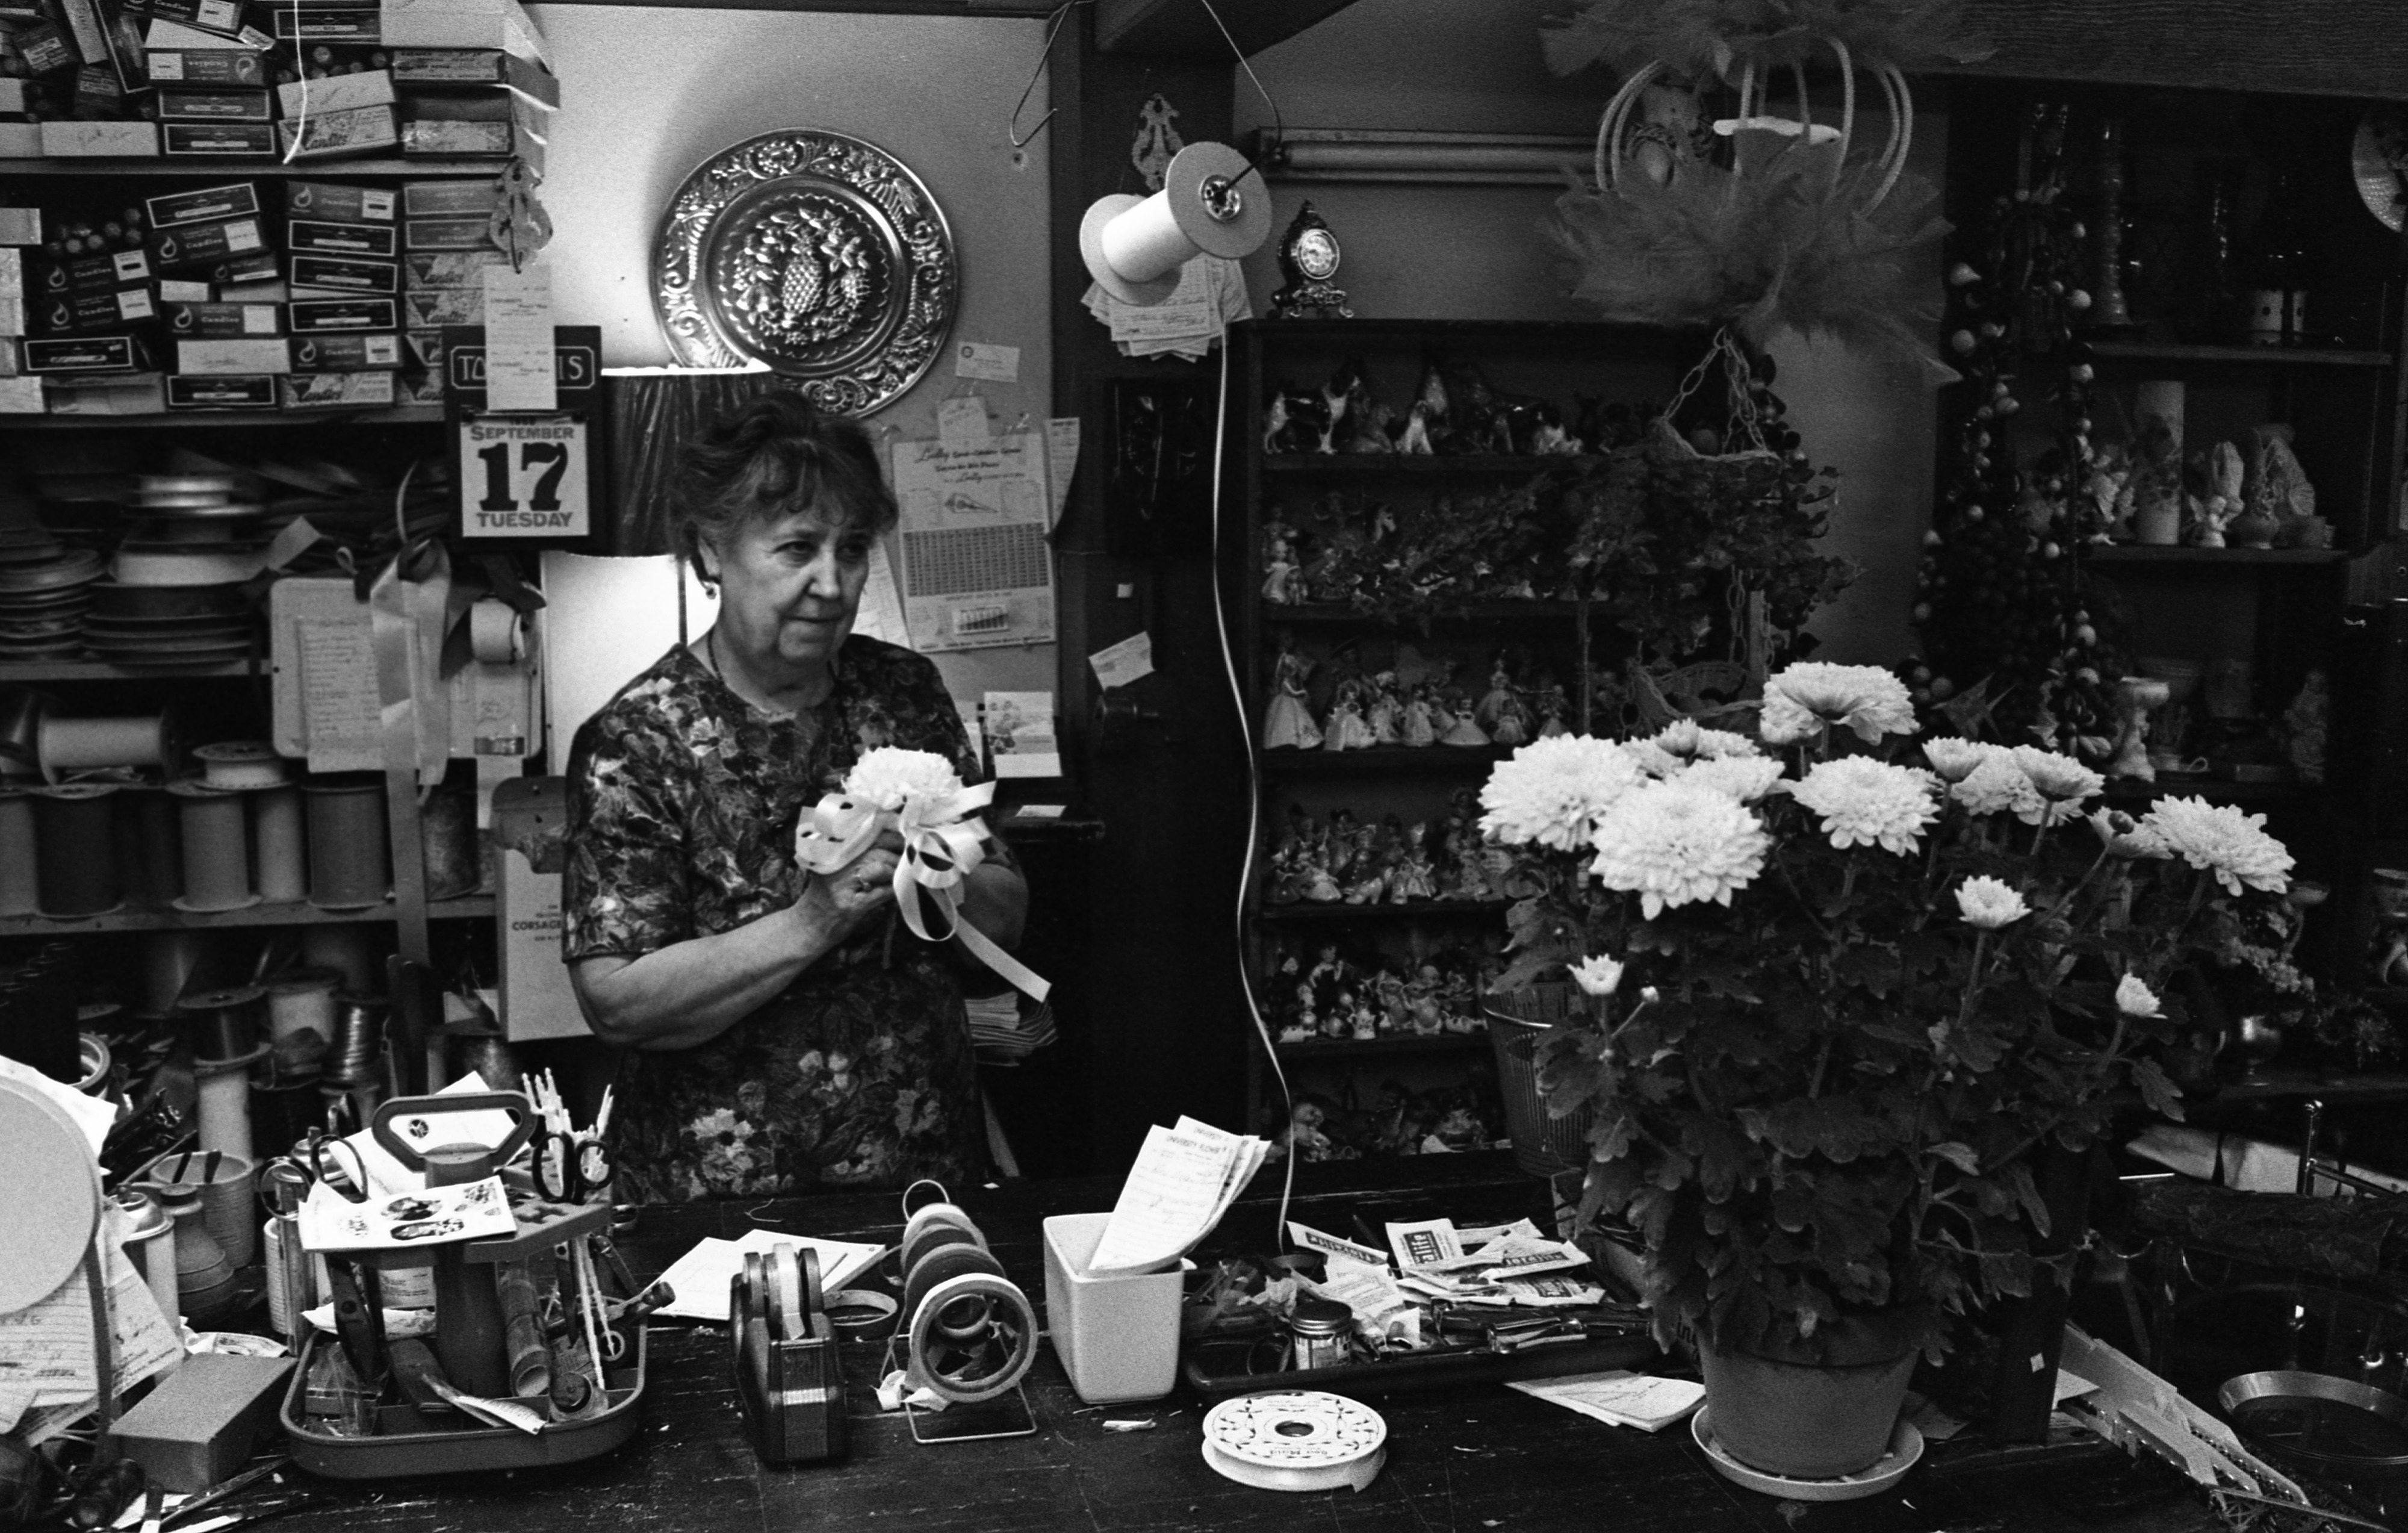 Mrs. Gladys Profok of University Flowers In Nickels Arcade Making Corsages, September 1968 image